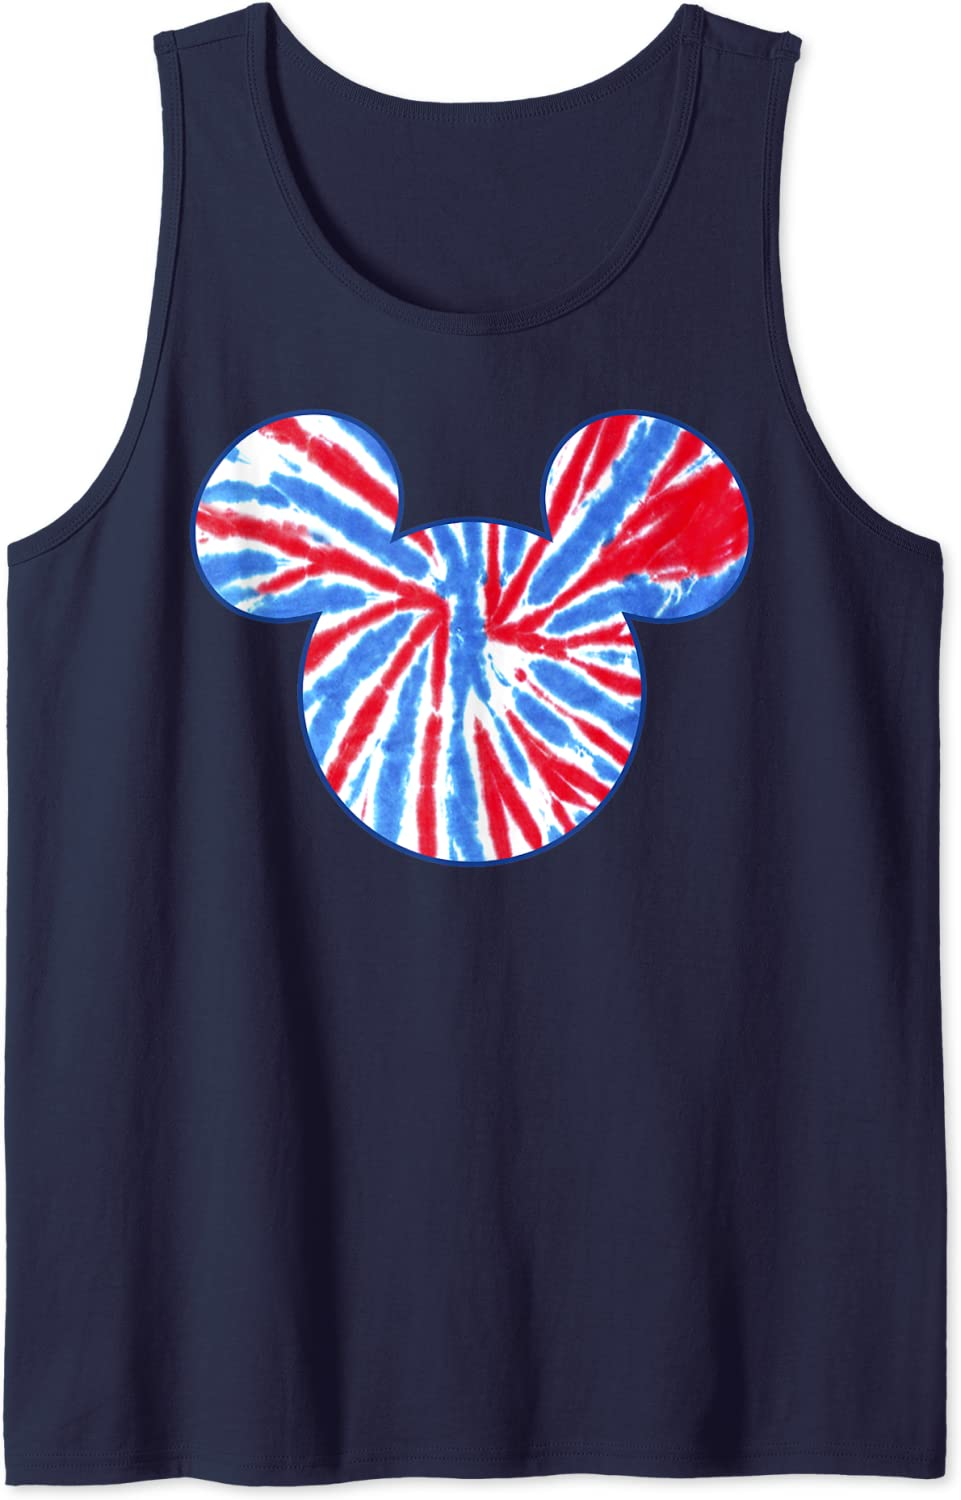 Disney Mickey And Friends Americana Tie Tank Fill Dye Top High order 2021 new